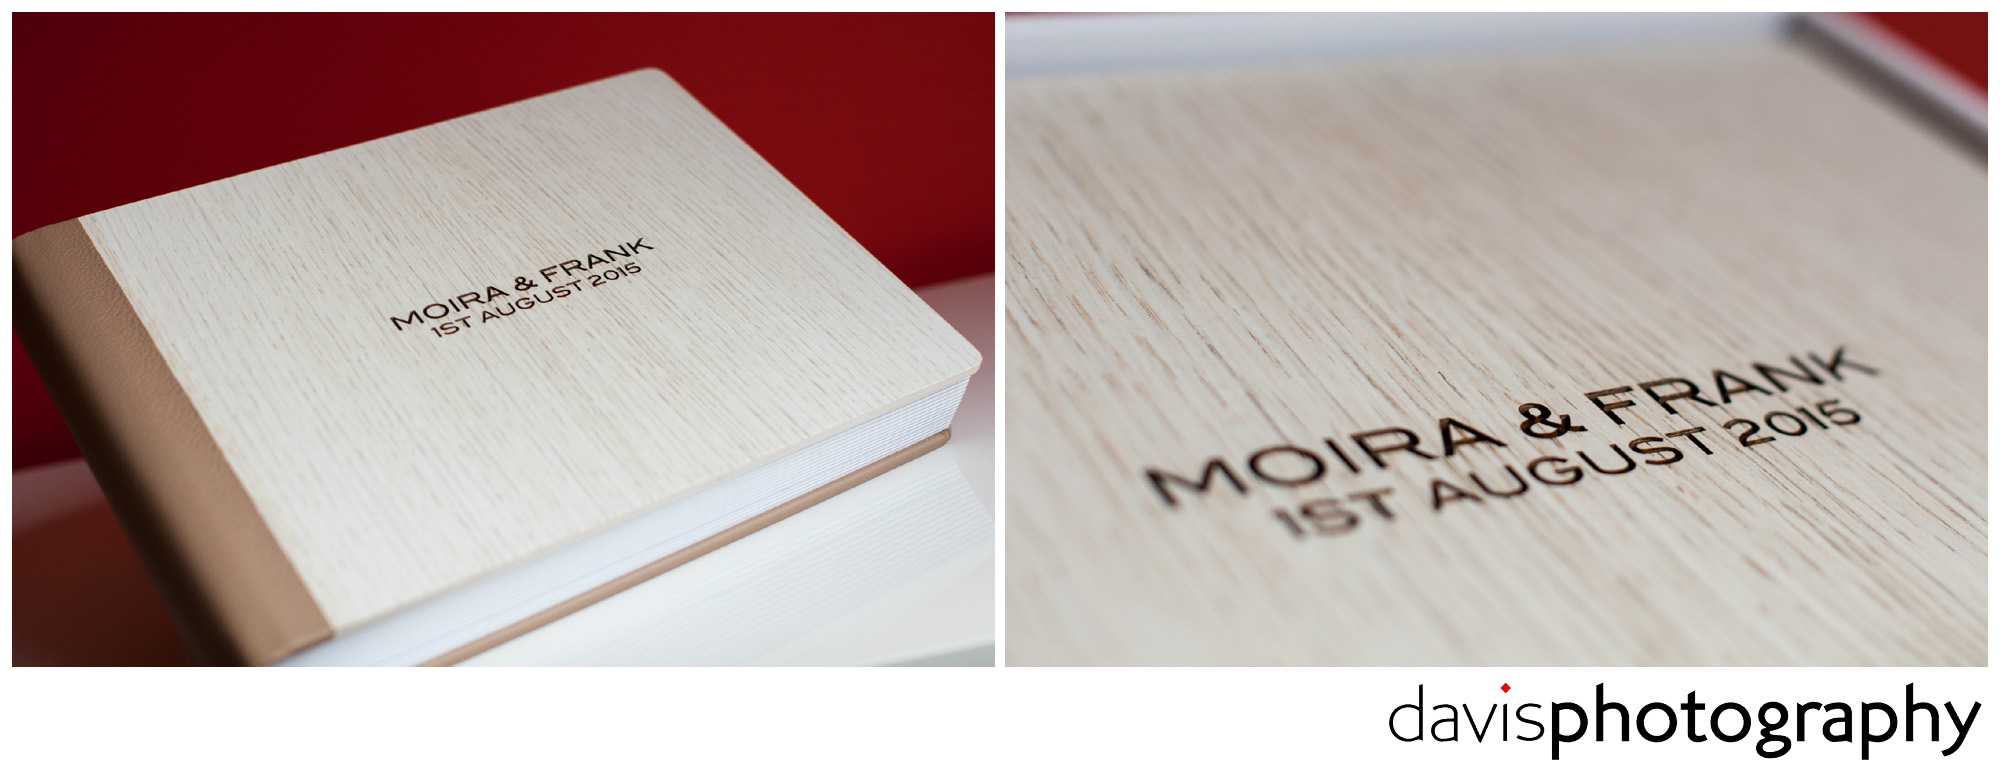 Wooden white oak covered album with spine and back wrapped in nutmeg coloured leather featuring bride and grooms names laser engraved into the front cover giving a burnt effect.